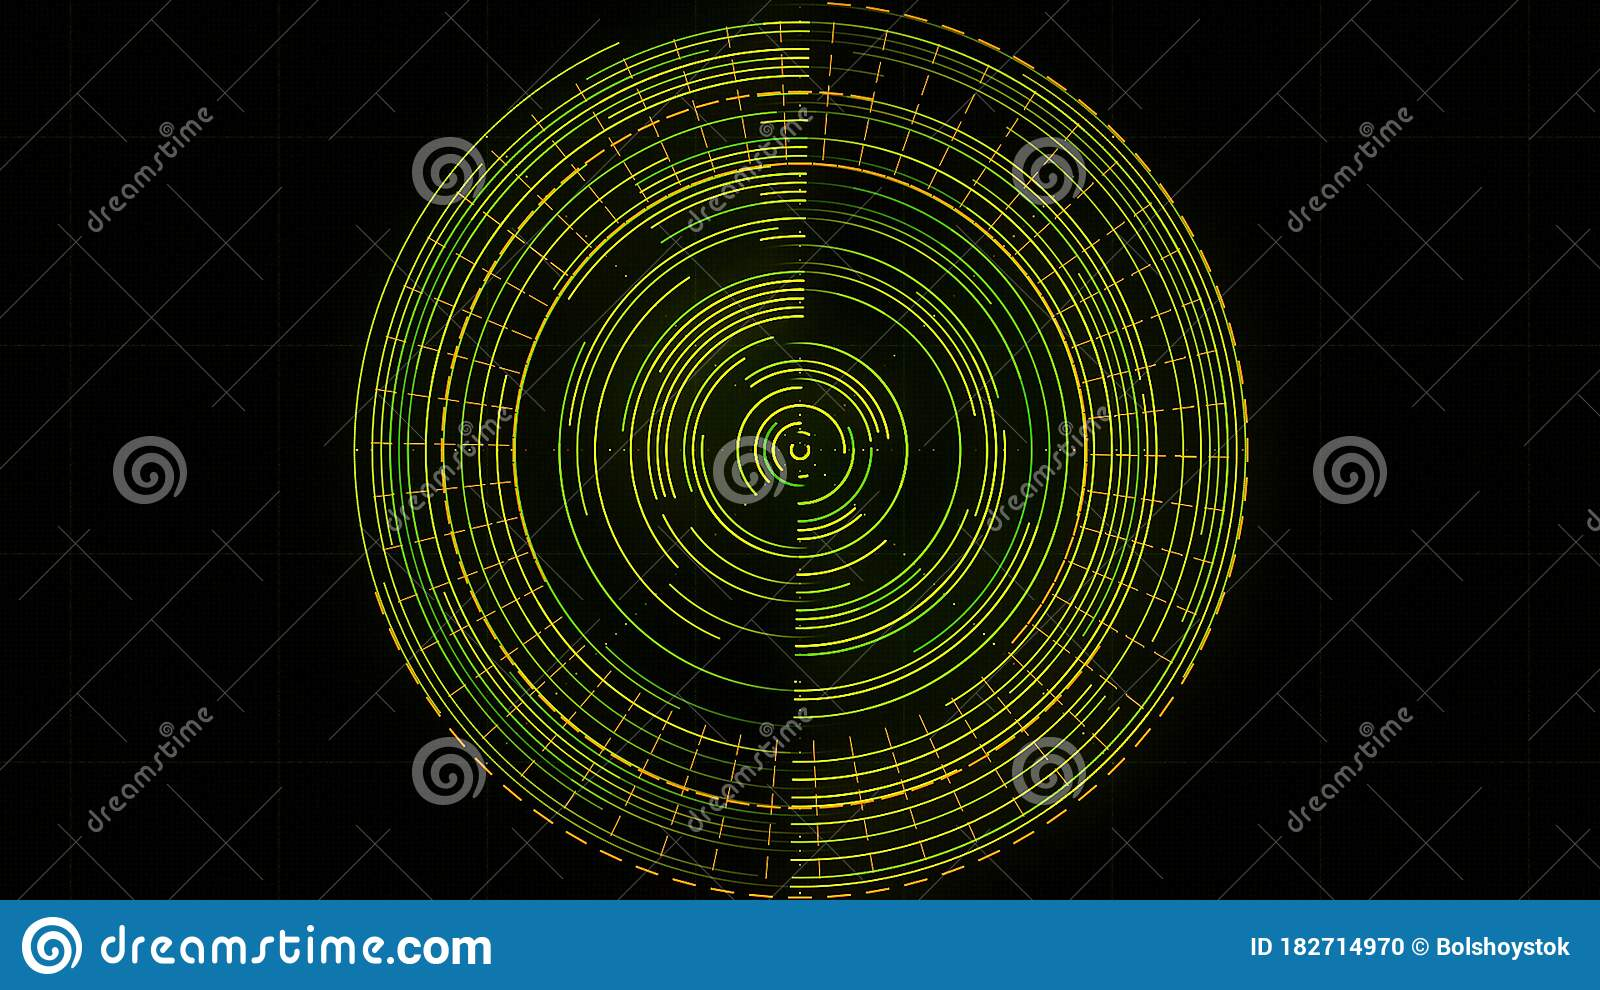 Abstract Rotating Radar On The Screen. Animation. Working Searching Program  With Spinning Circles Isolated On Black Stock Illustration - Illustration  of counter, overlapping: 182714970